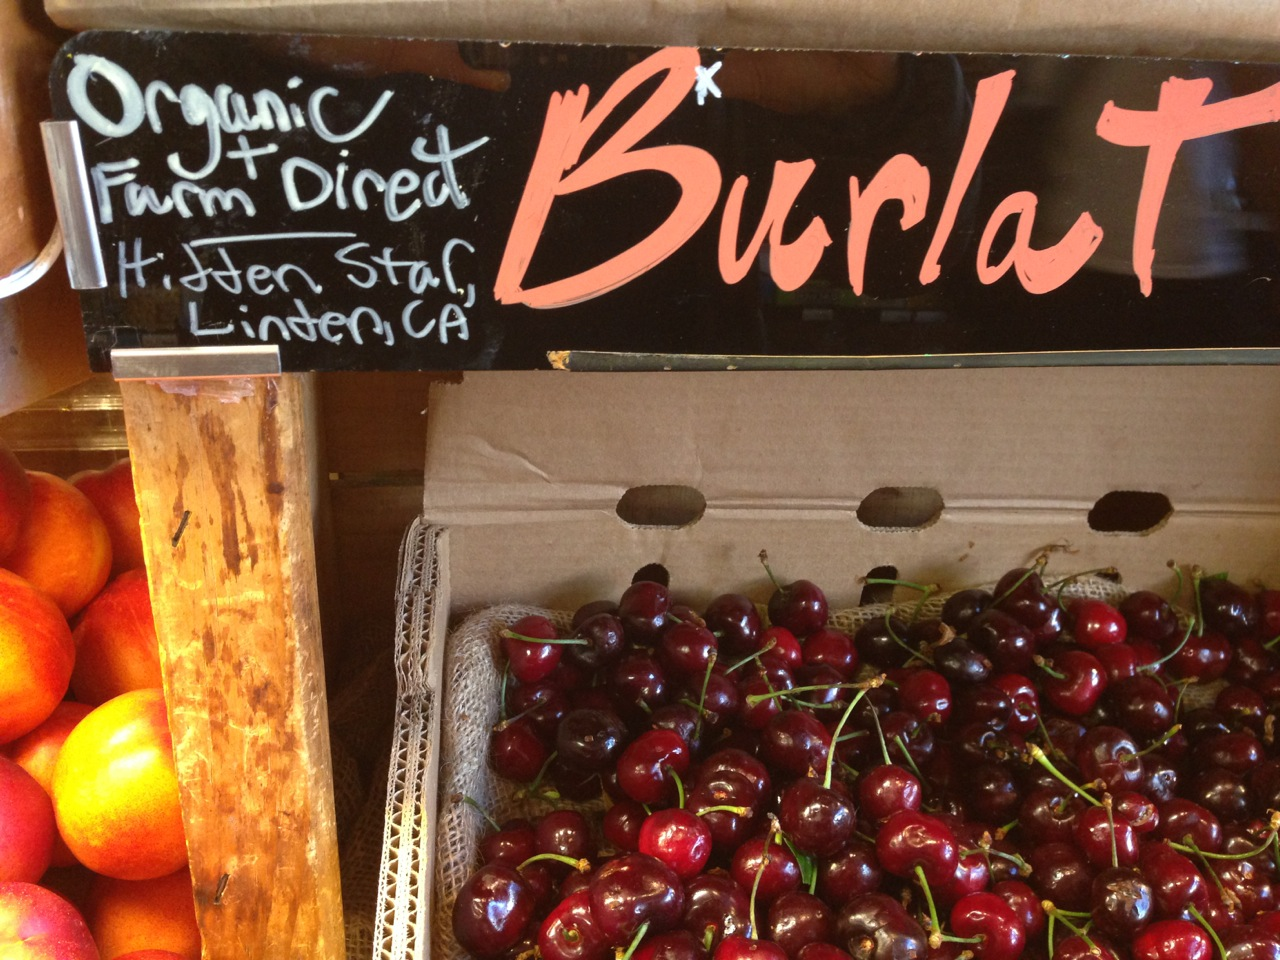 Light California Cherry Season Thanks to Warm Winter - Expect Higher Prices